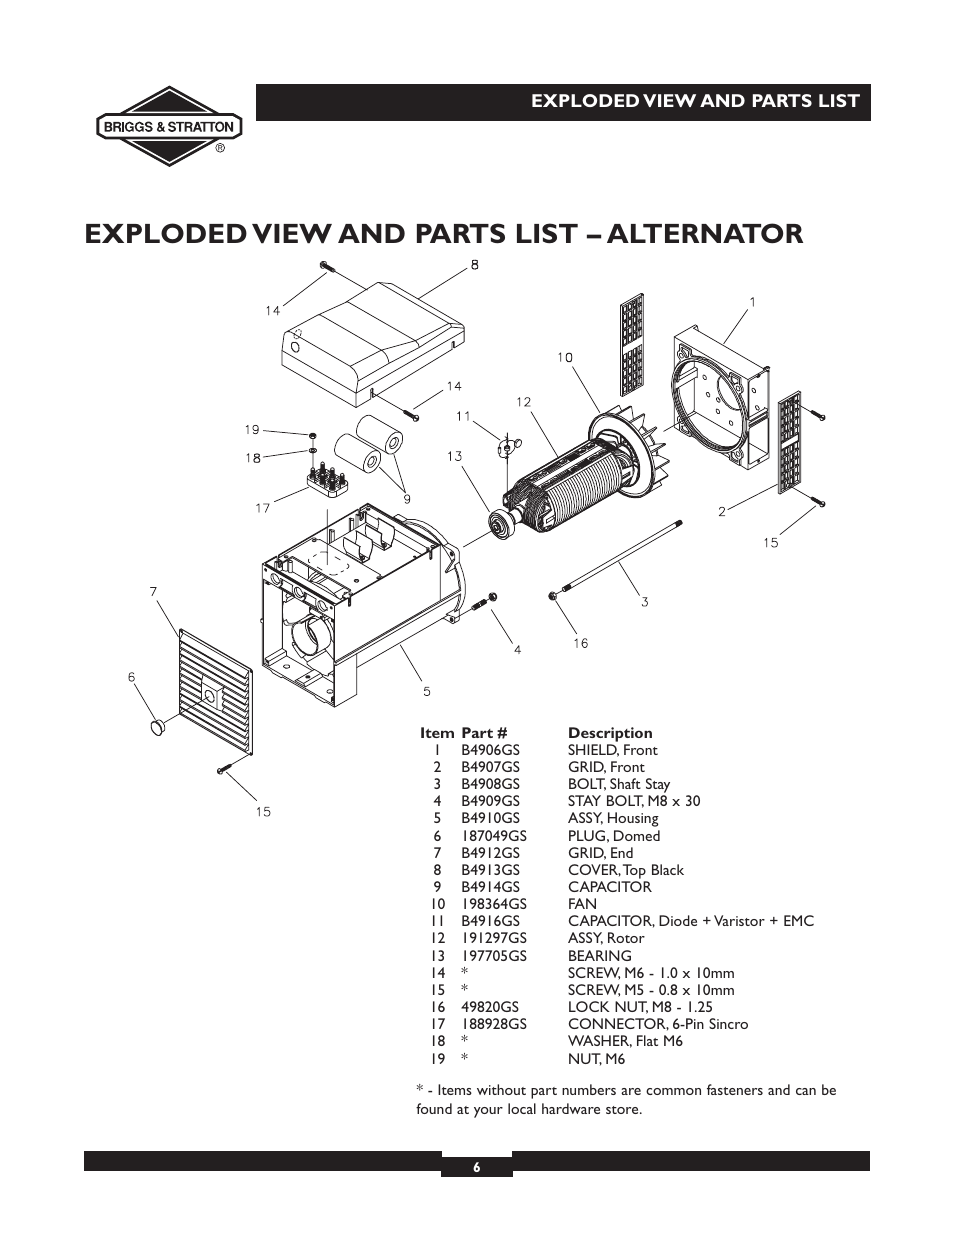 Exploded View And Parts List Alternator Briggs Stratton Elite 10 0 Motor Wiring Diagram 09801 9 User Manual Page 6